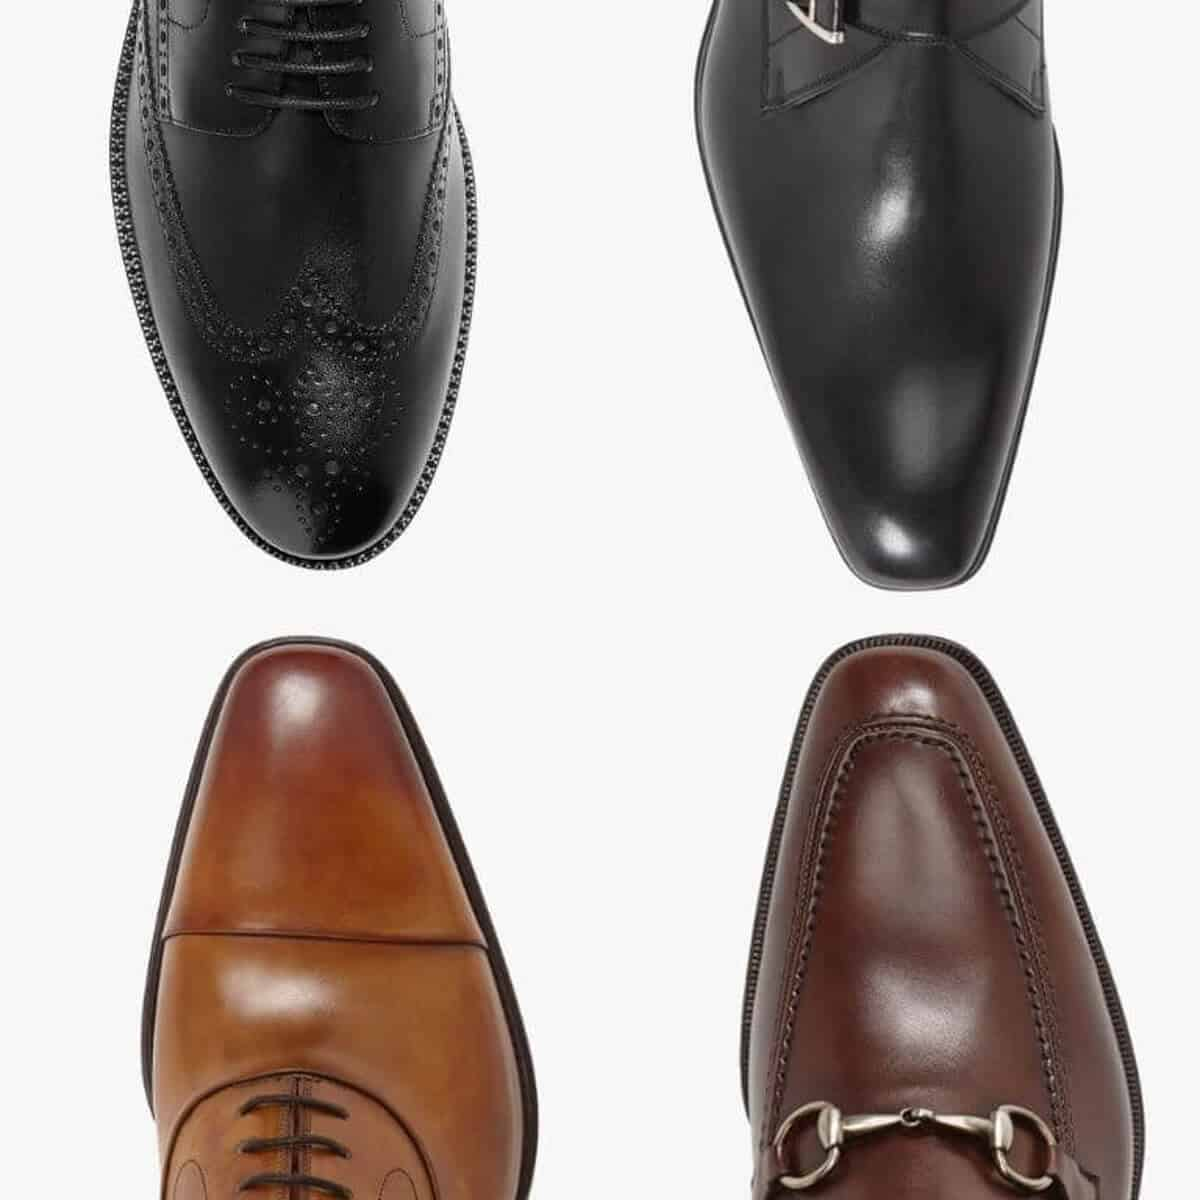 Four types of dress shoes.